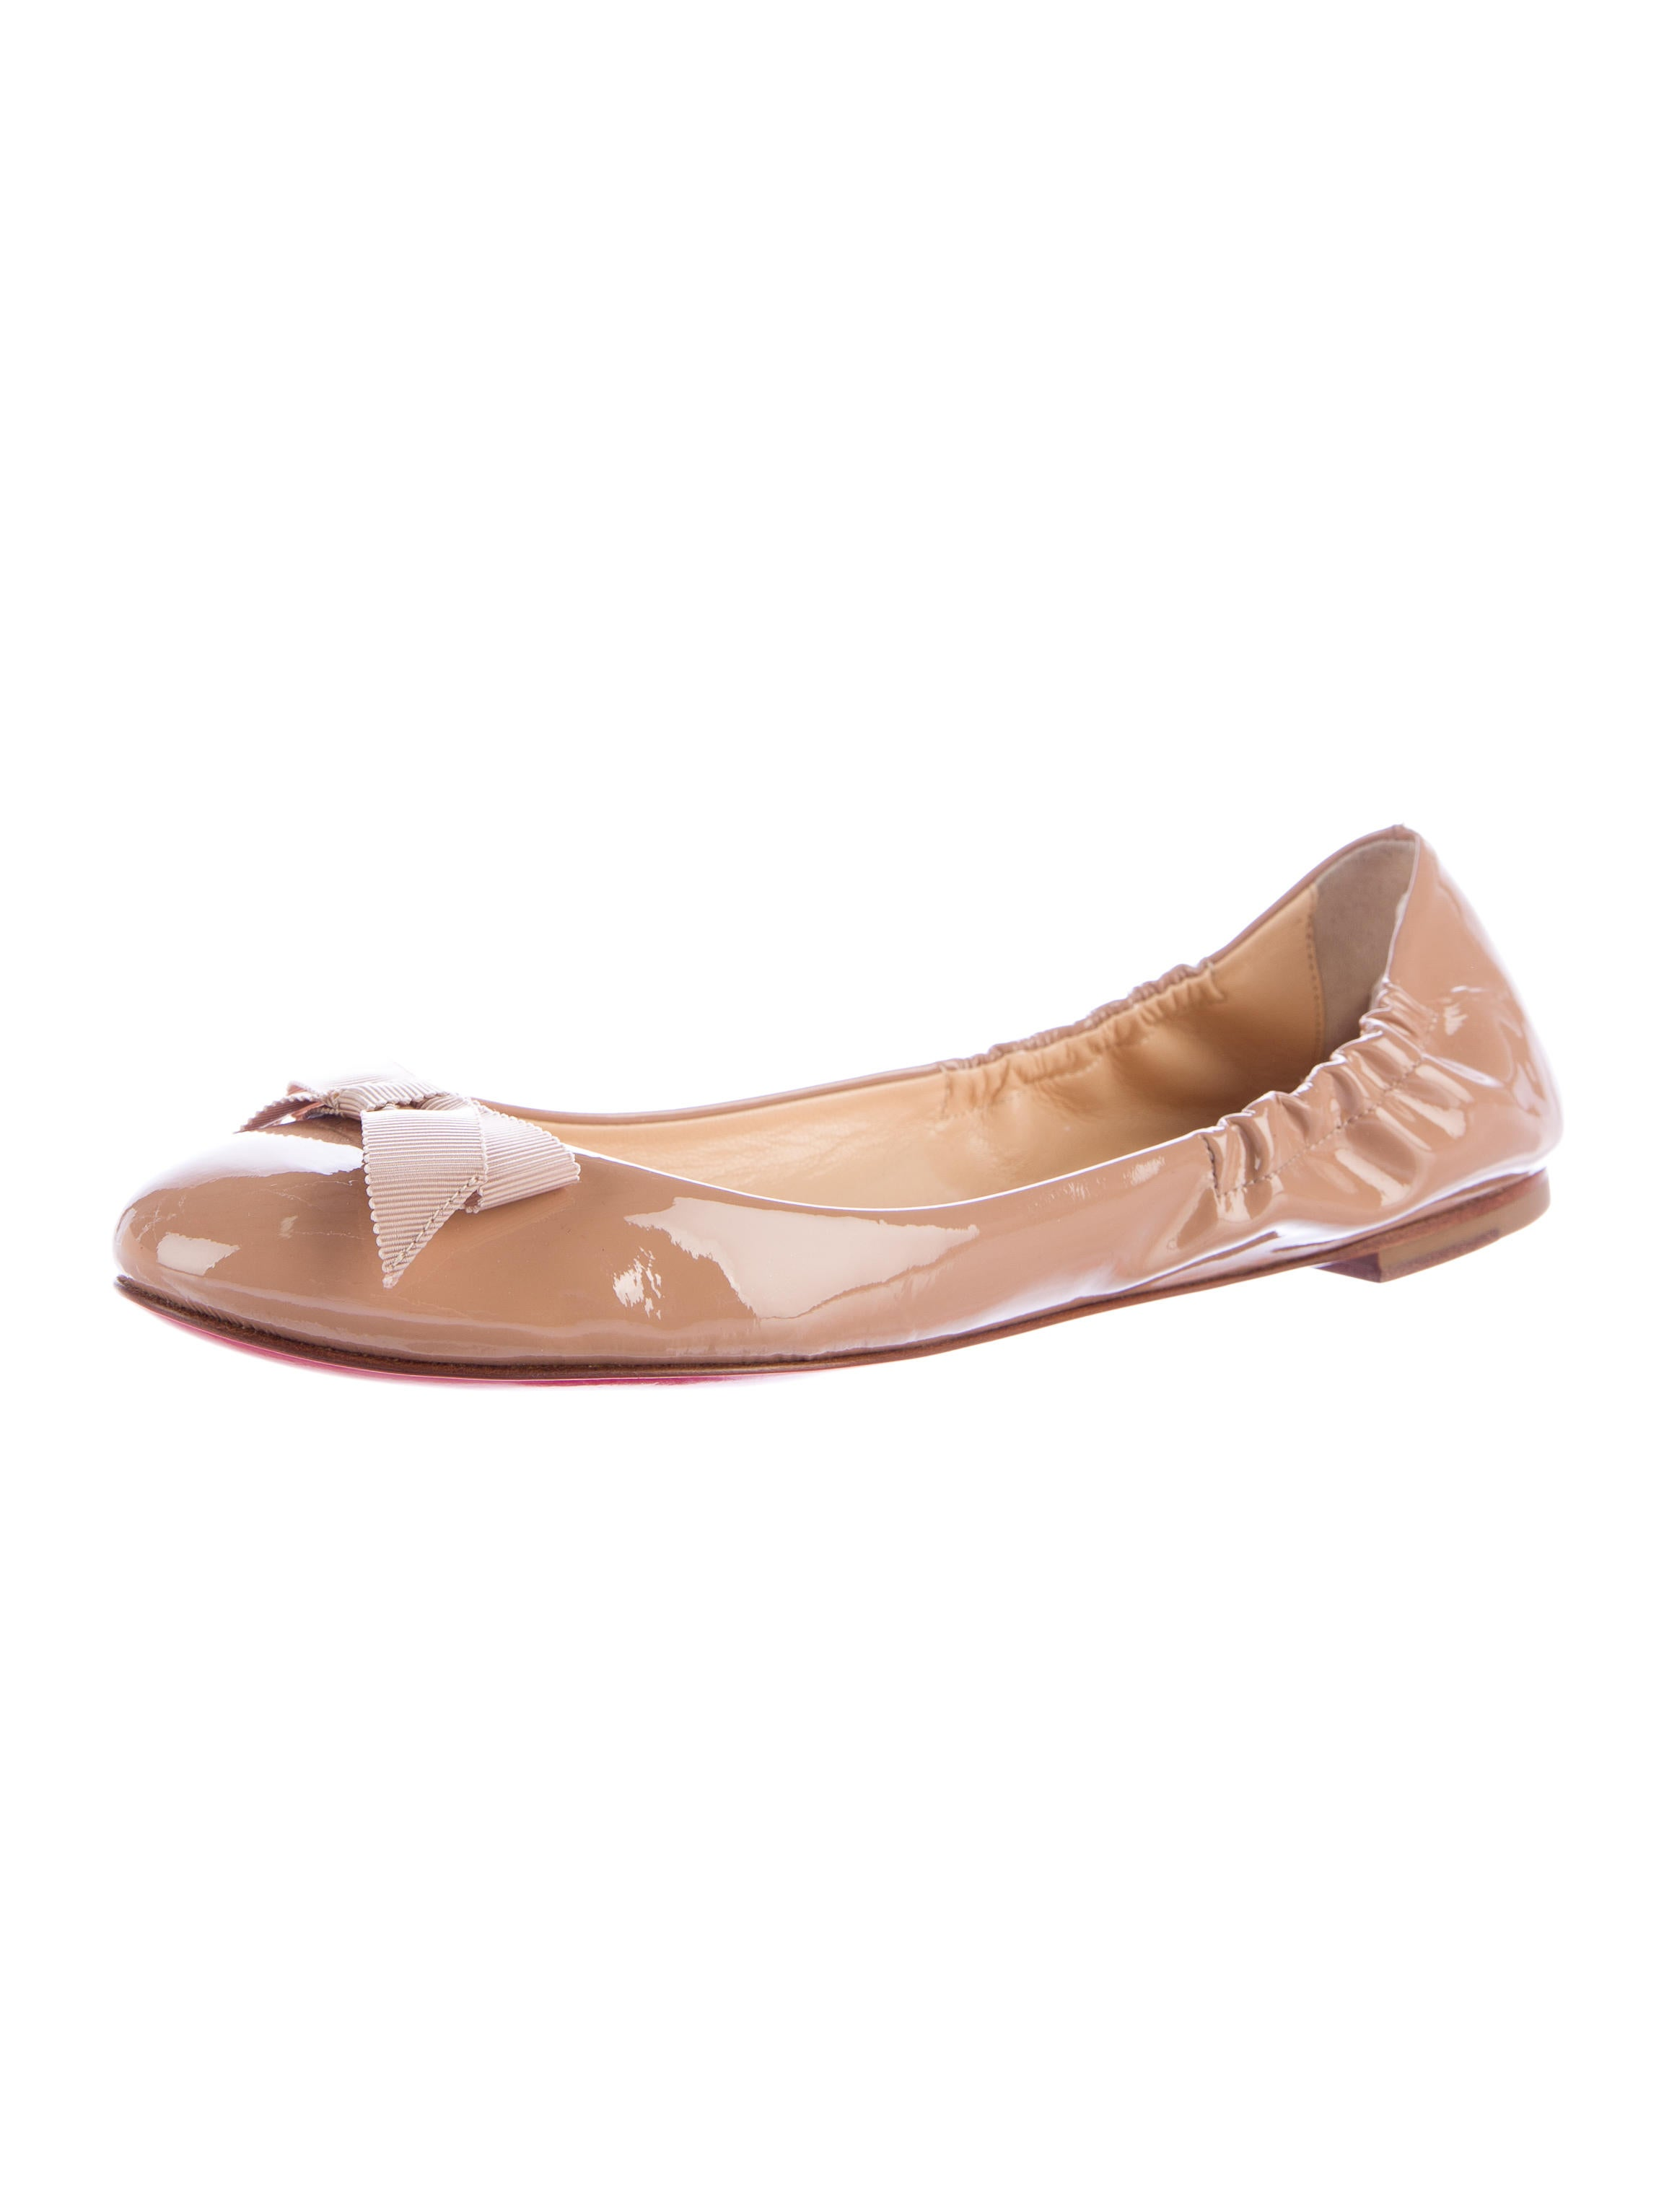 competitive price 81760 4e45d Christian Louboutin Gloriana Ballet Flats - Shoes - CHT67442 ...